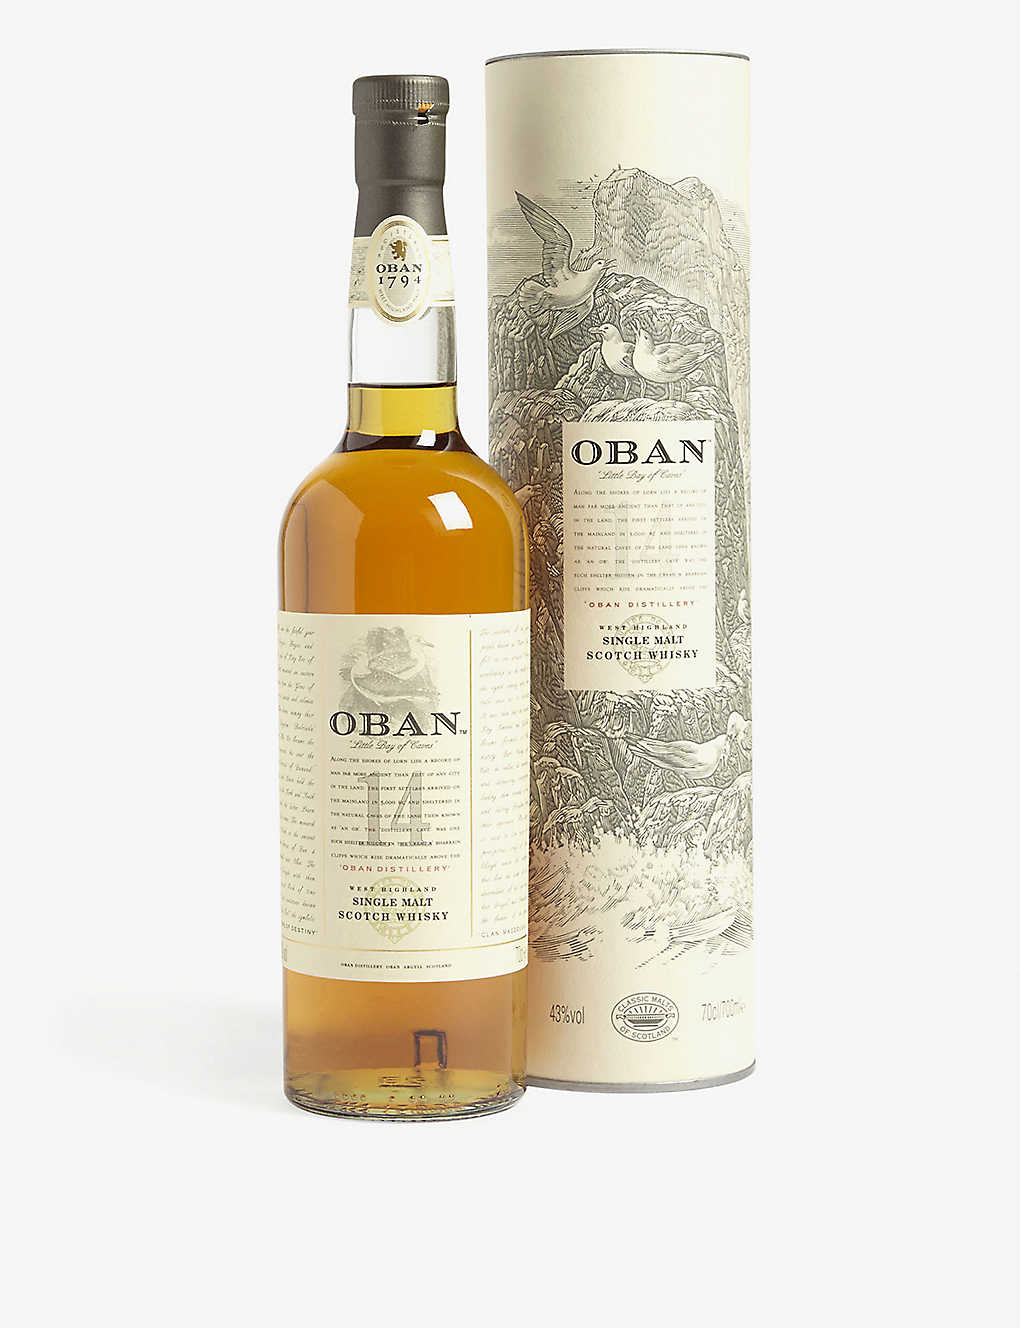 HIGHLAND: Oban 14-year-old single malt Scotch whisky 700ml